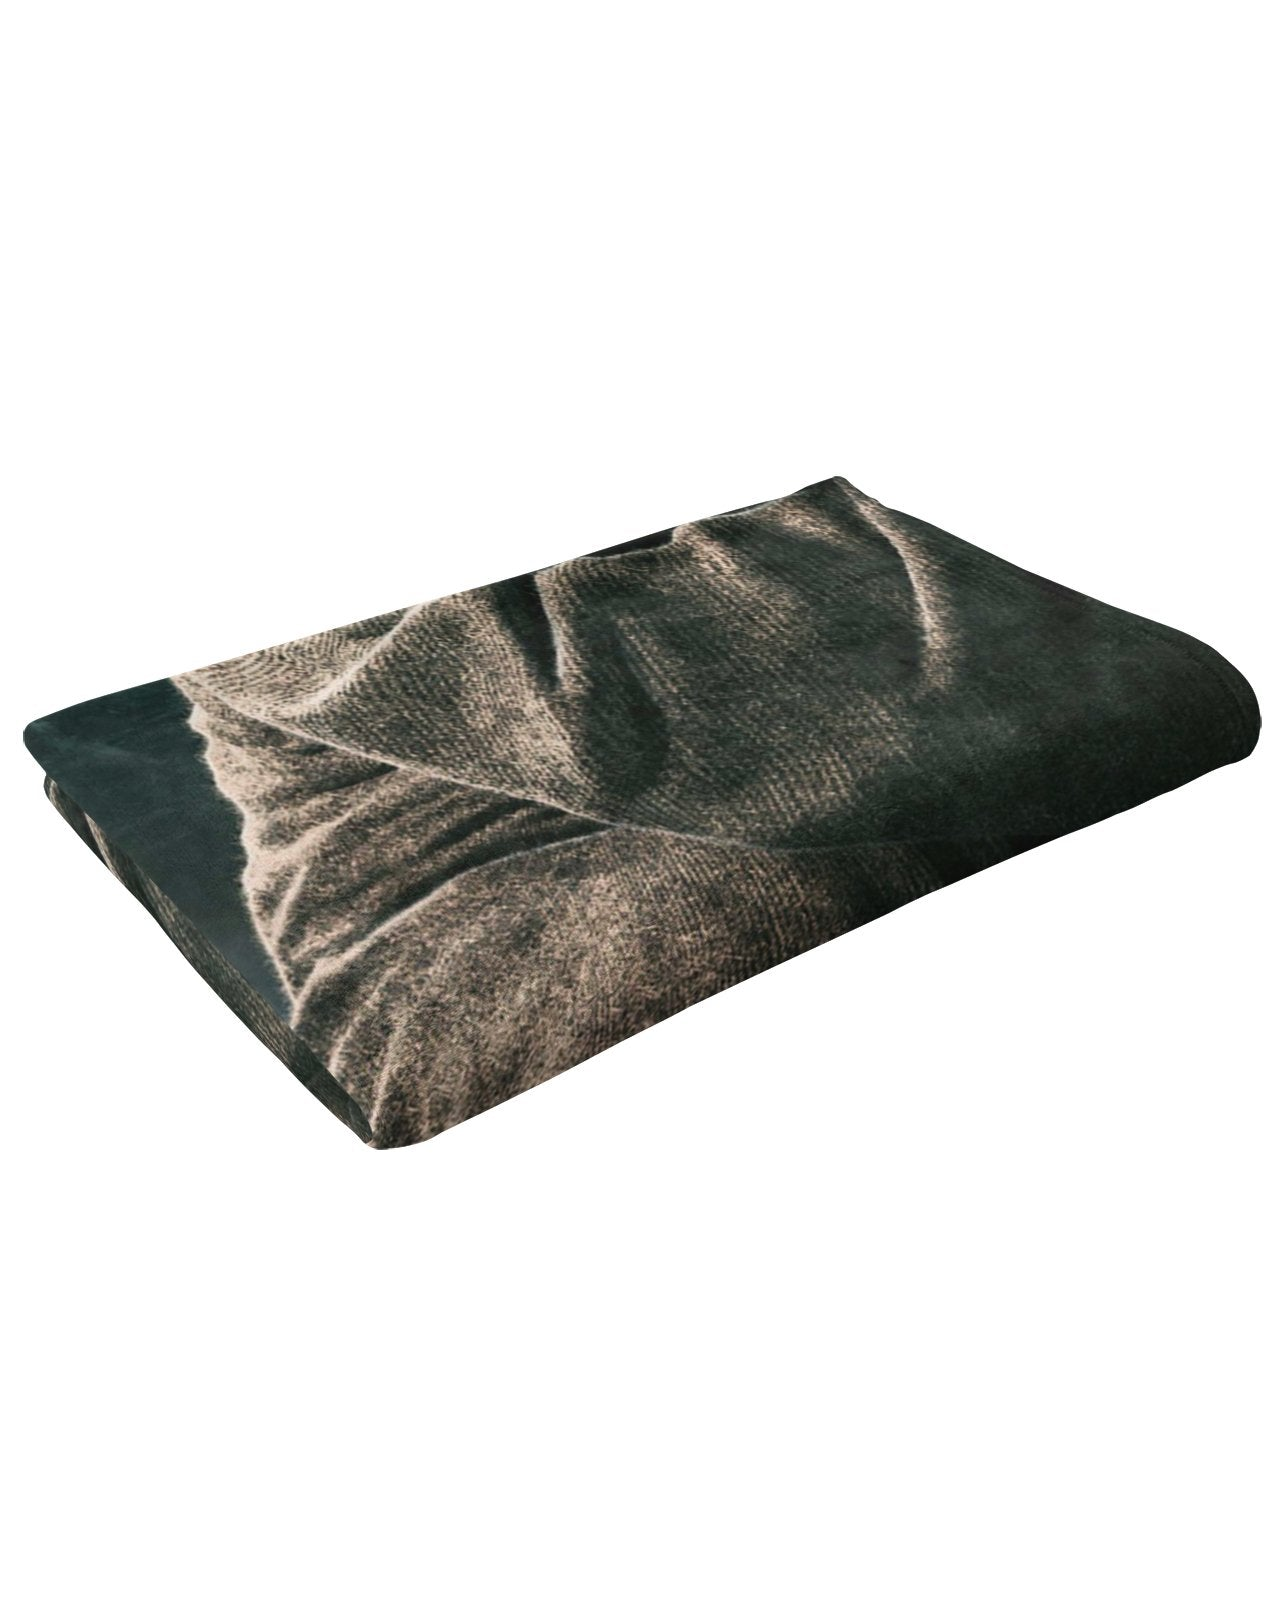 Yoda Fluffy Micro Fleece Throw Blanket